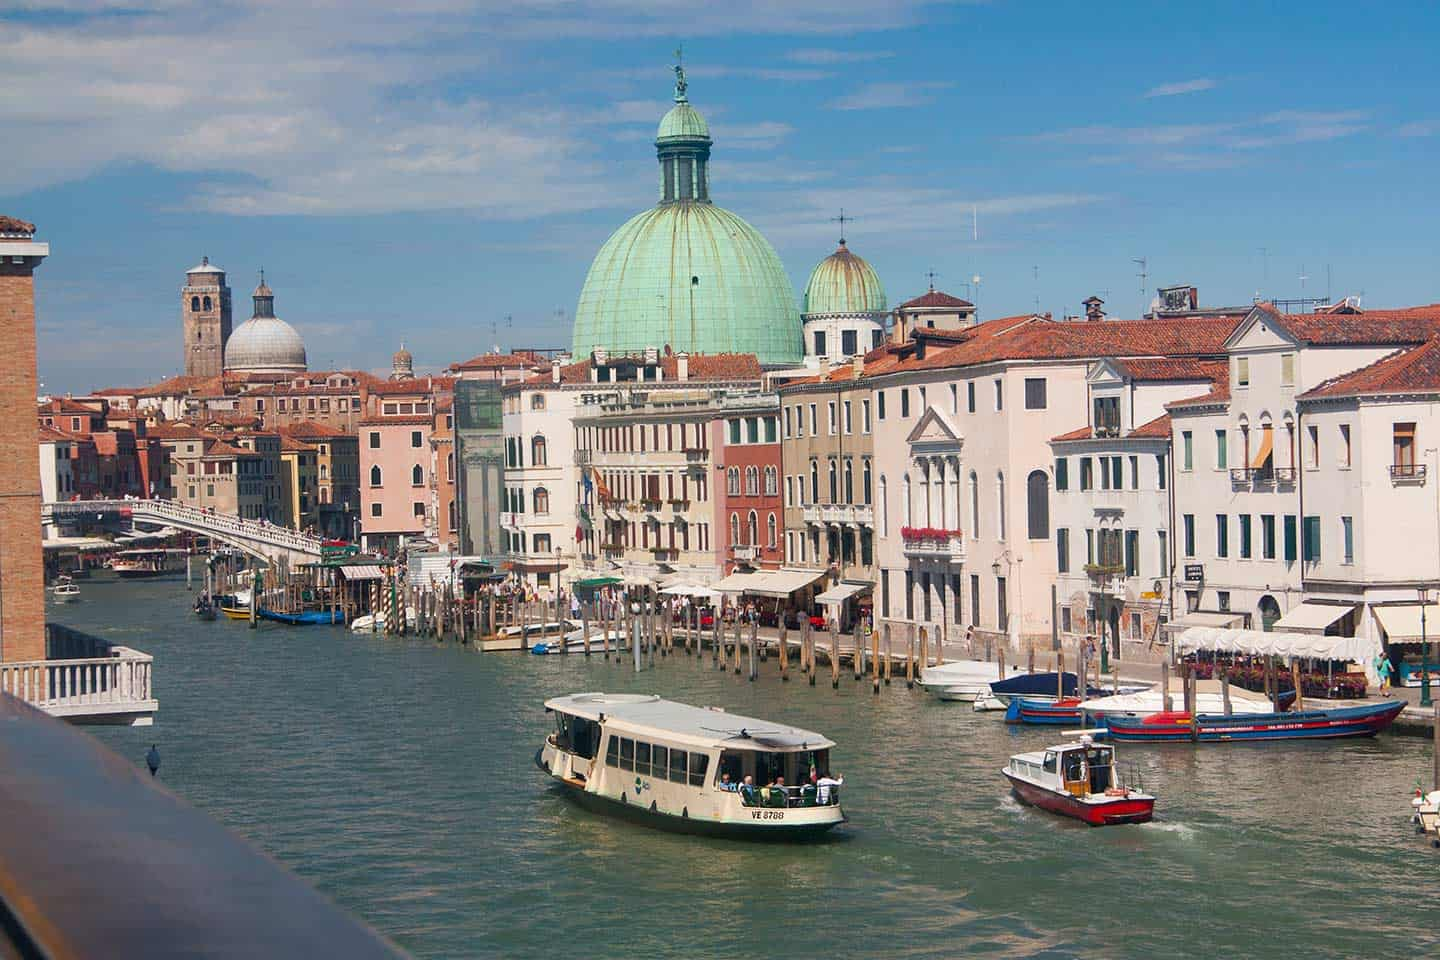 Image of a vaporetto or waterbus on the Grand Canal in Venice